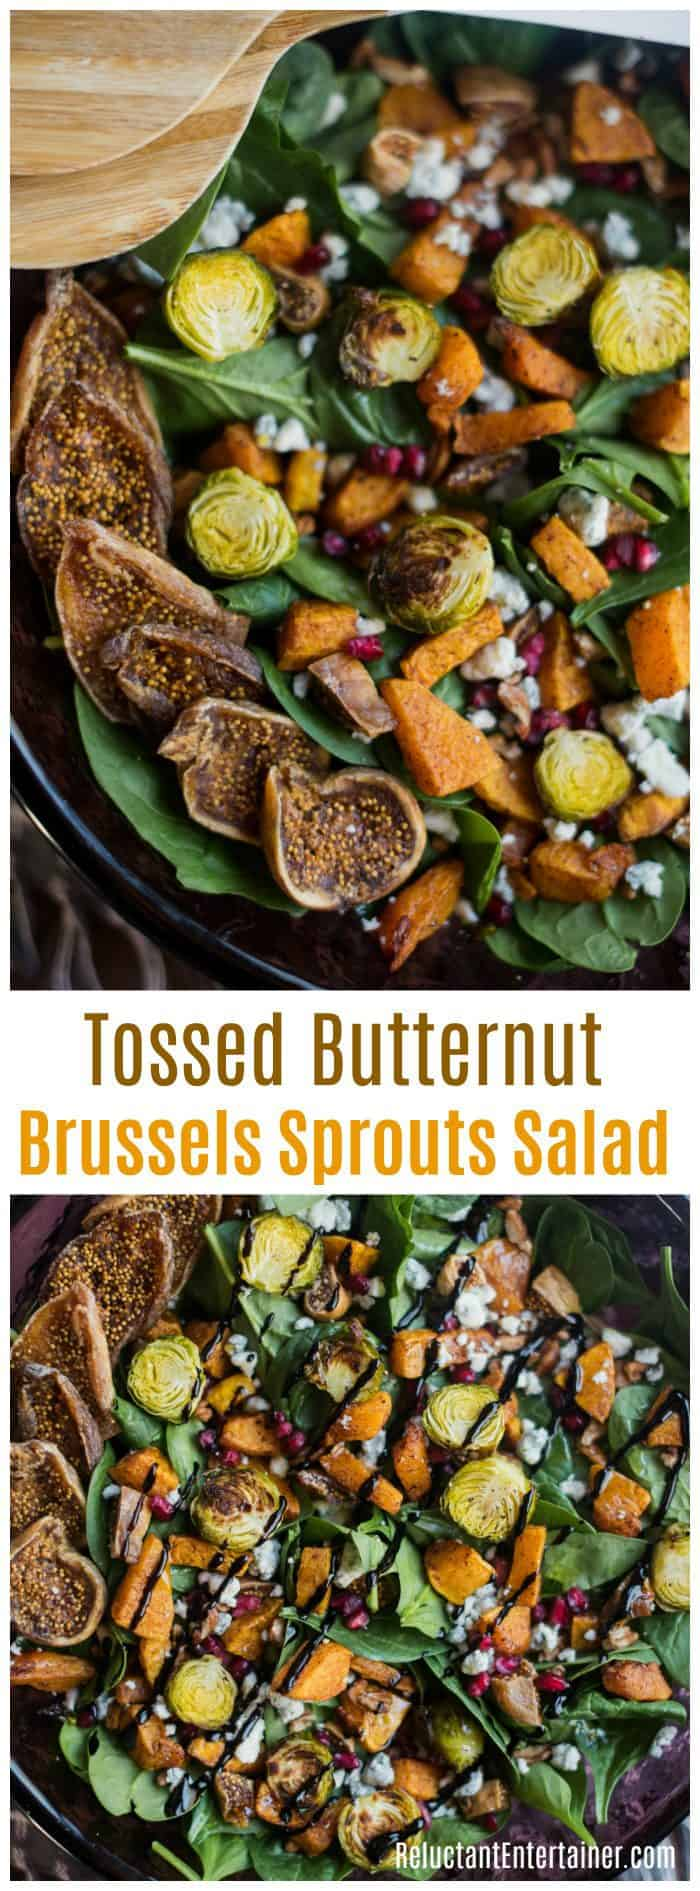 Tossed Butternut Brussels Sprouts Salad